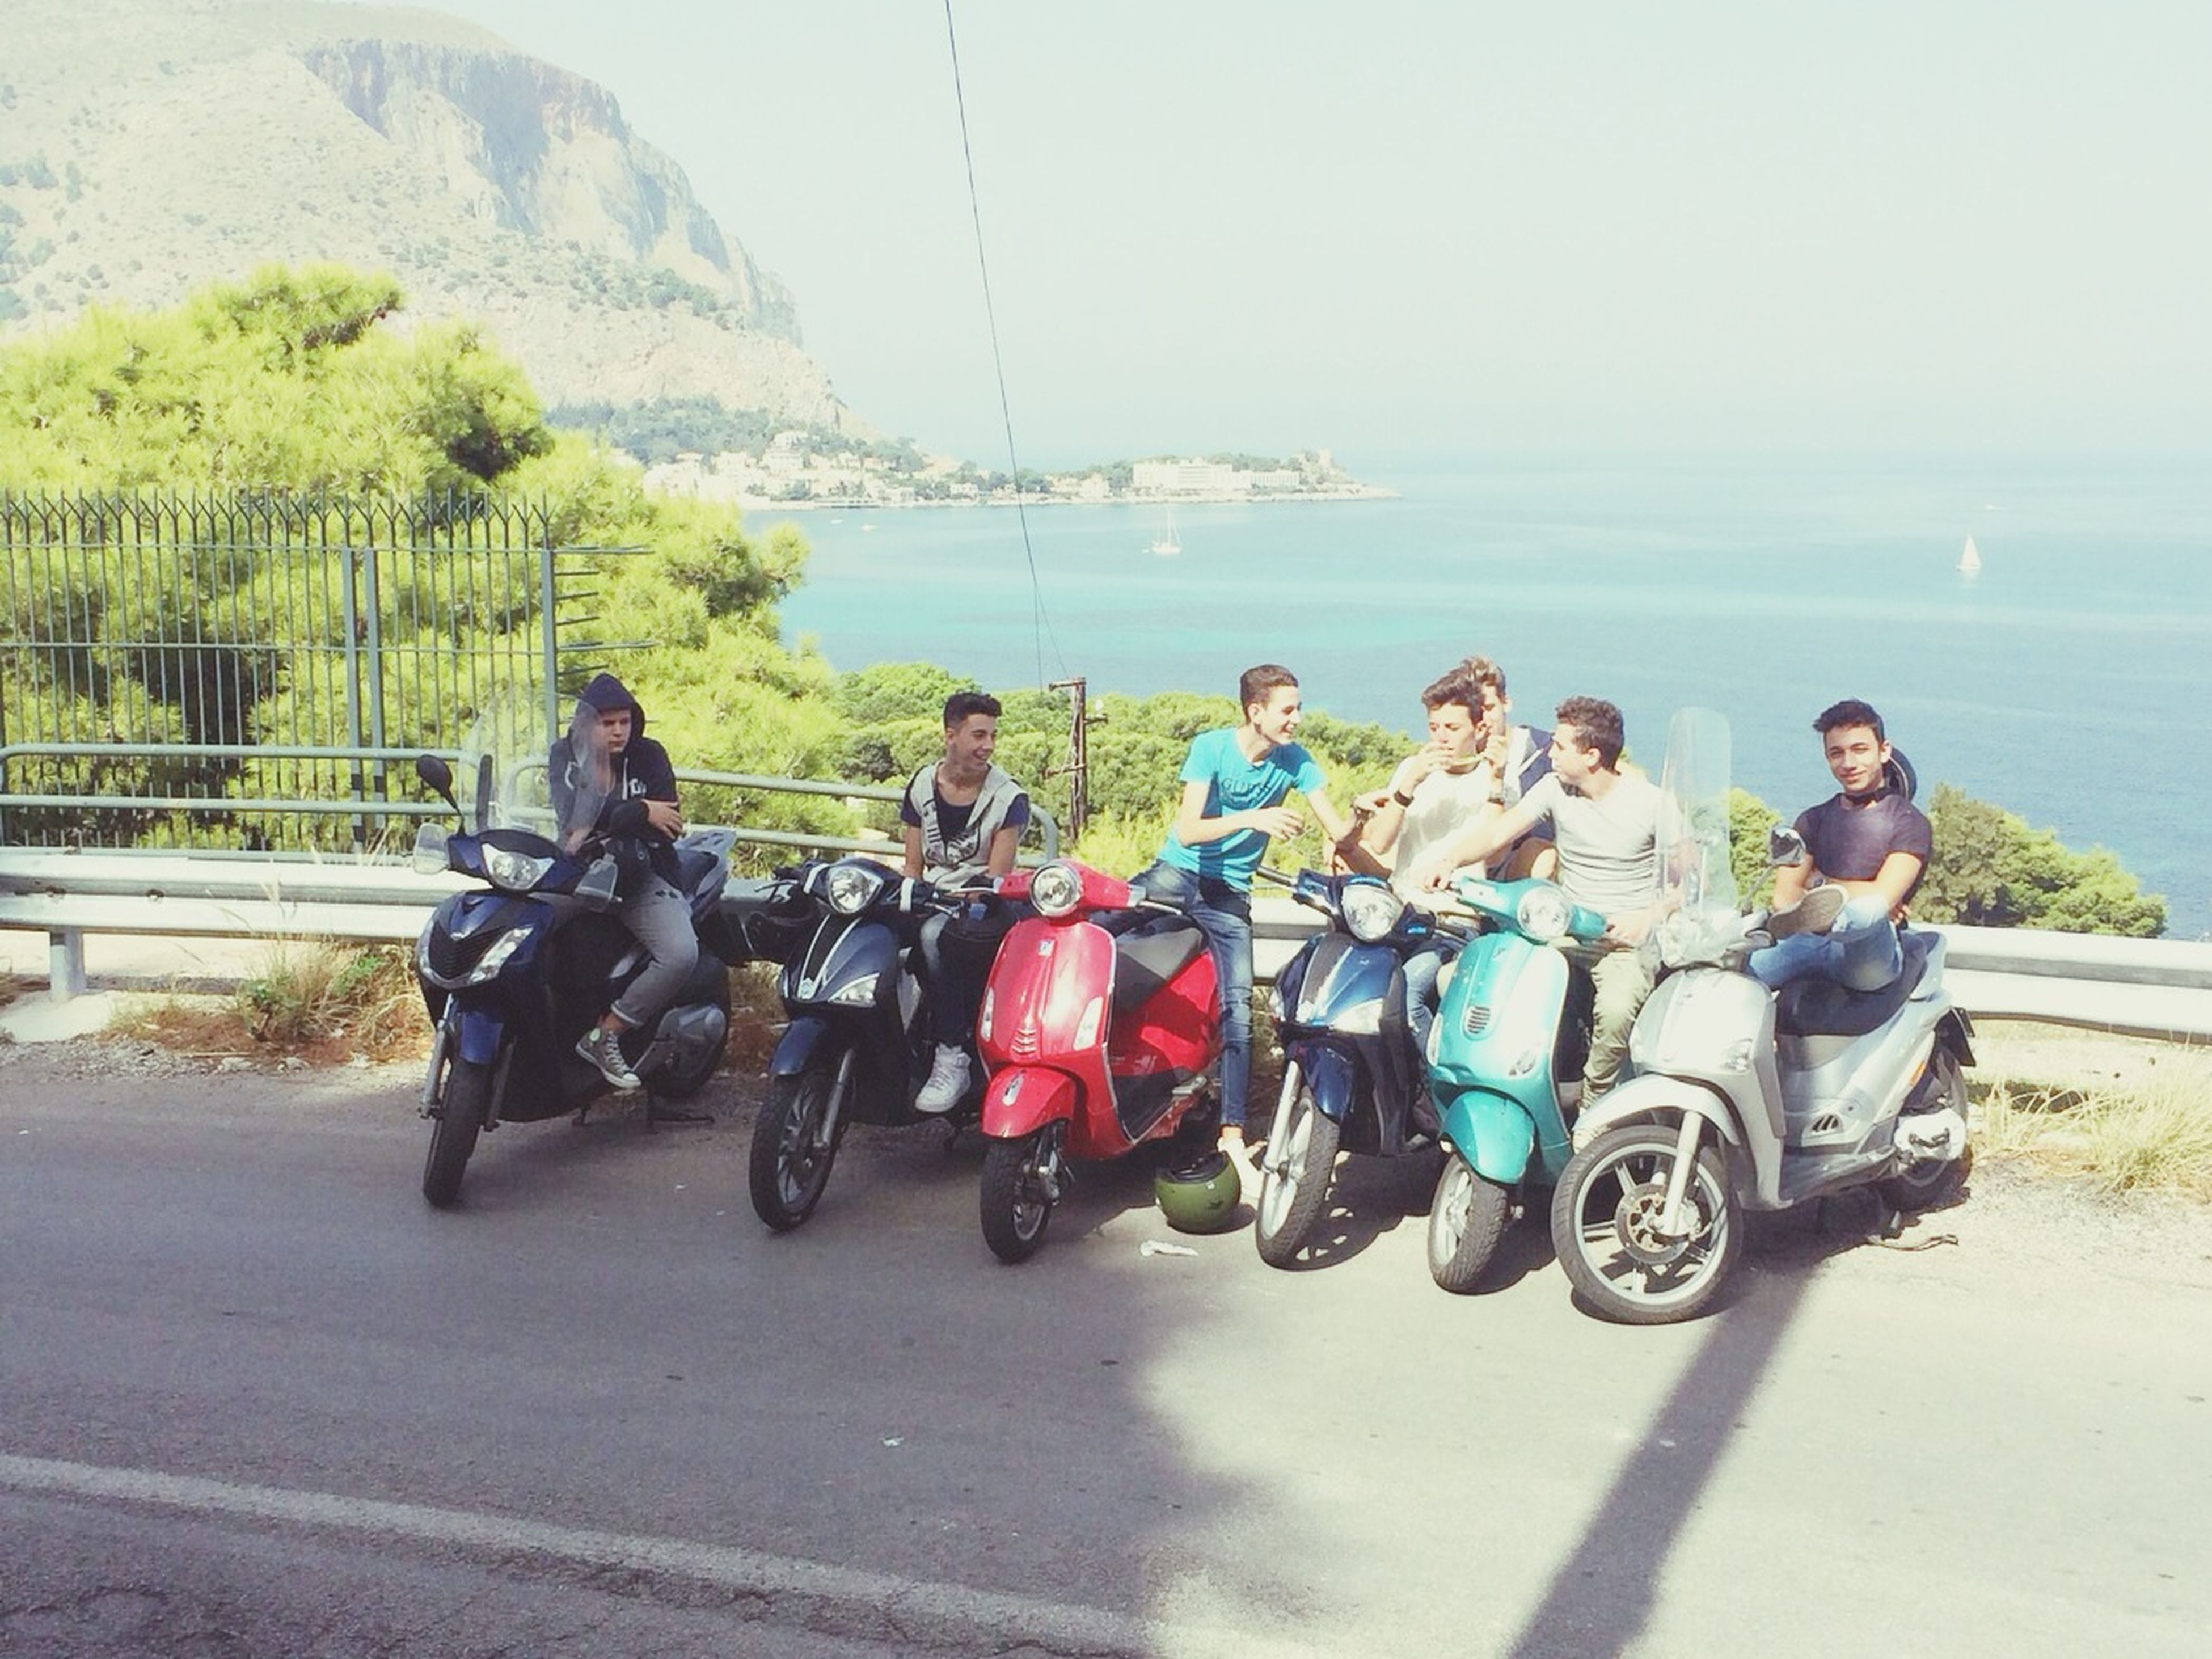 lifestyles, leisure activity, transportation, mode of transport, togetherness, men, land vehicle, bicycle, bonding, full length, sea, water, casual clothing, sitting, riding, friendship, love, person